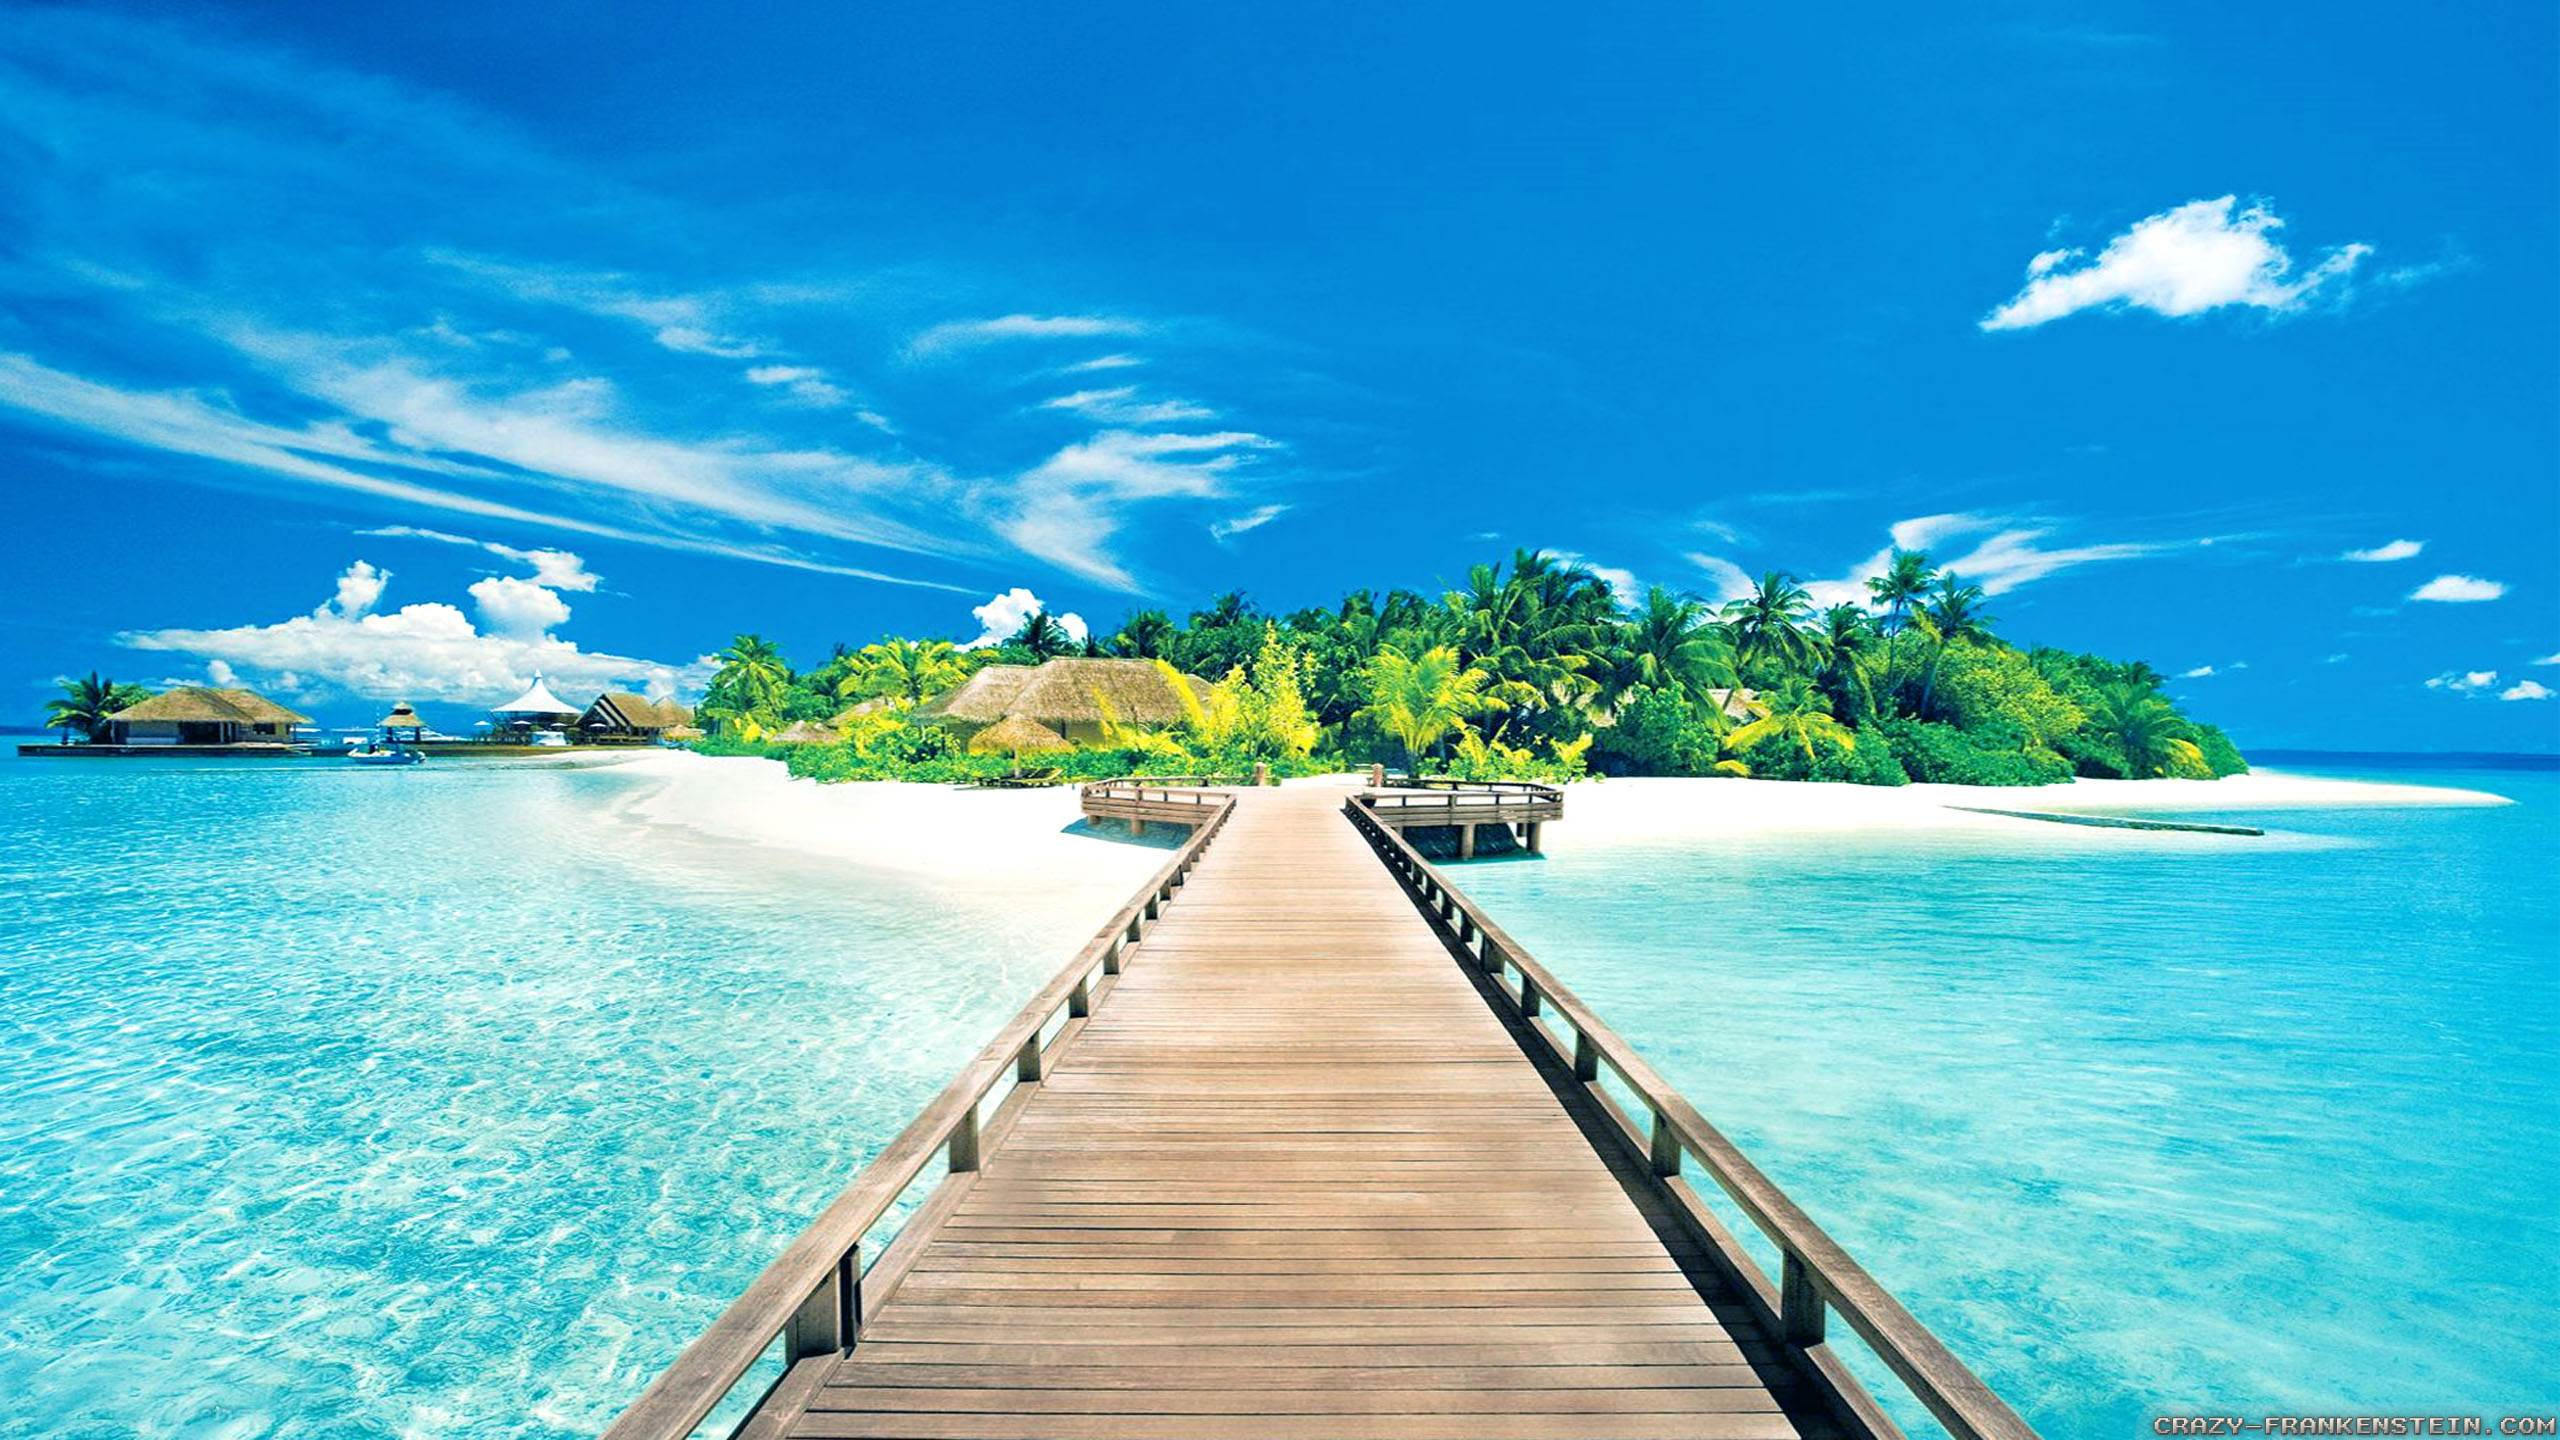 beach wallpaper tropical beach wallpapers android for hd wallpaper desktop from timmatic com